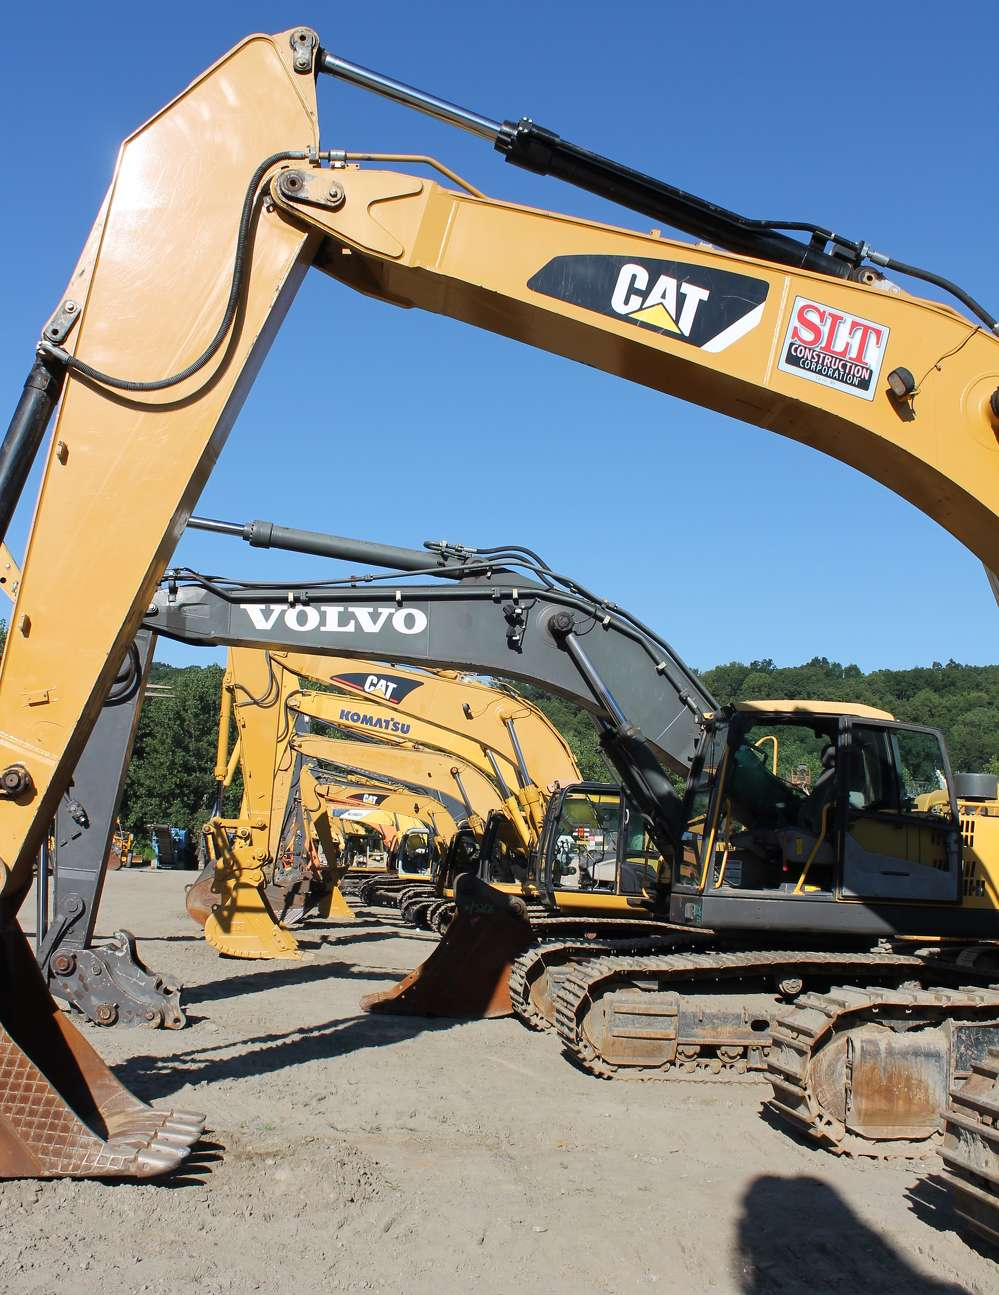 Who will go home with one of these excavators?